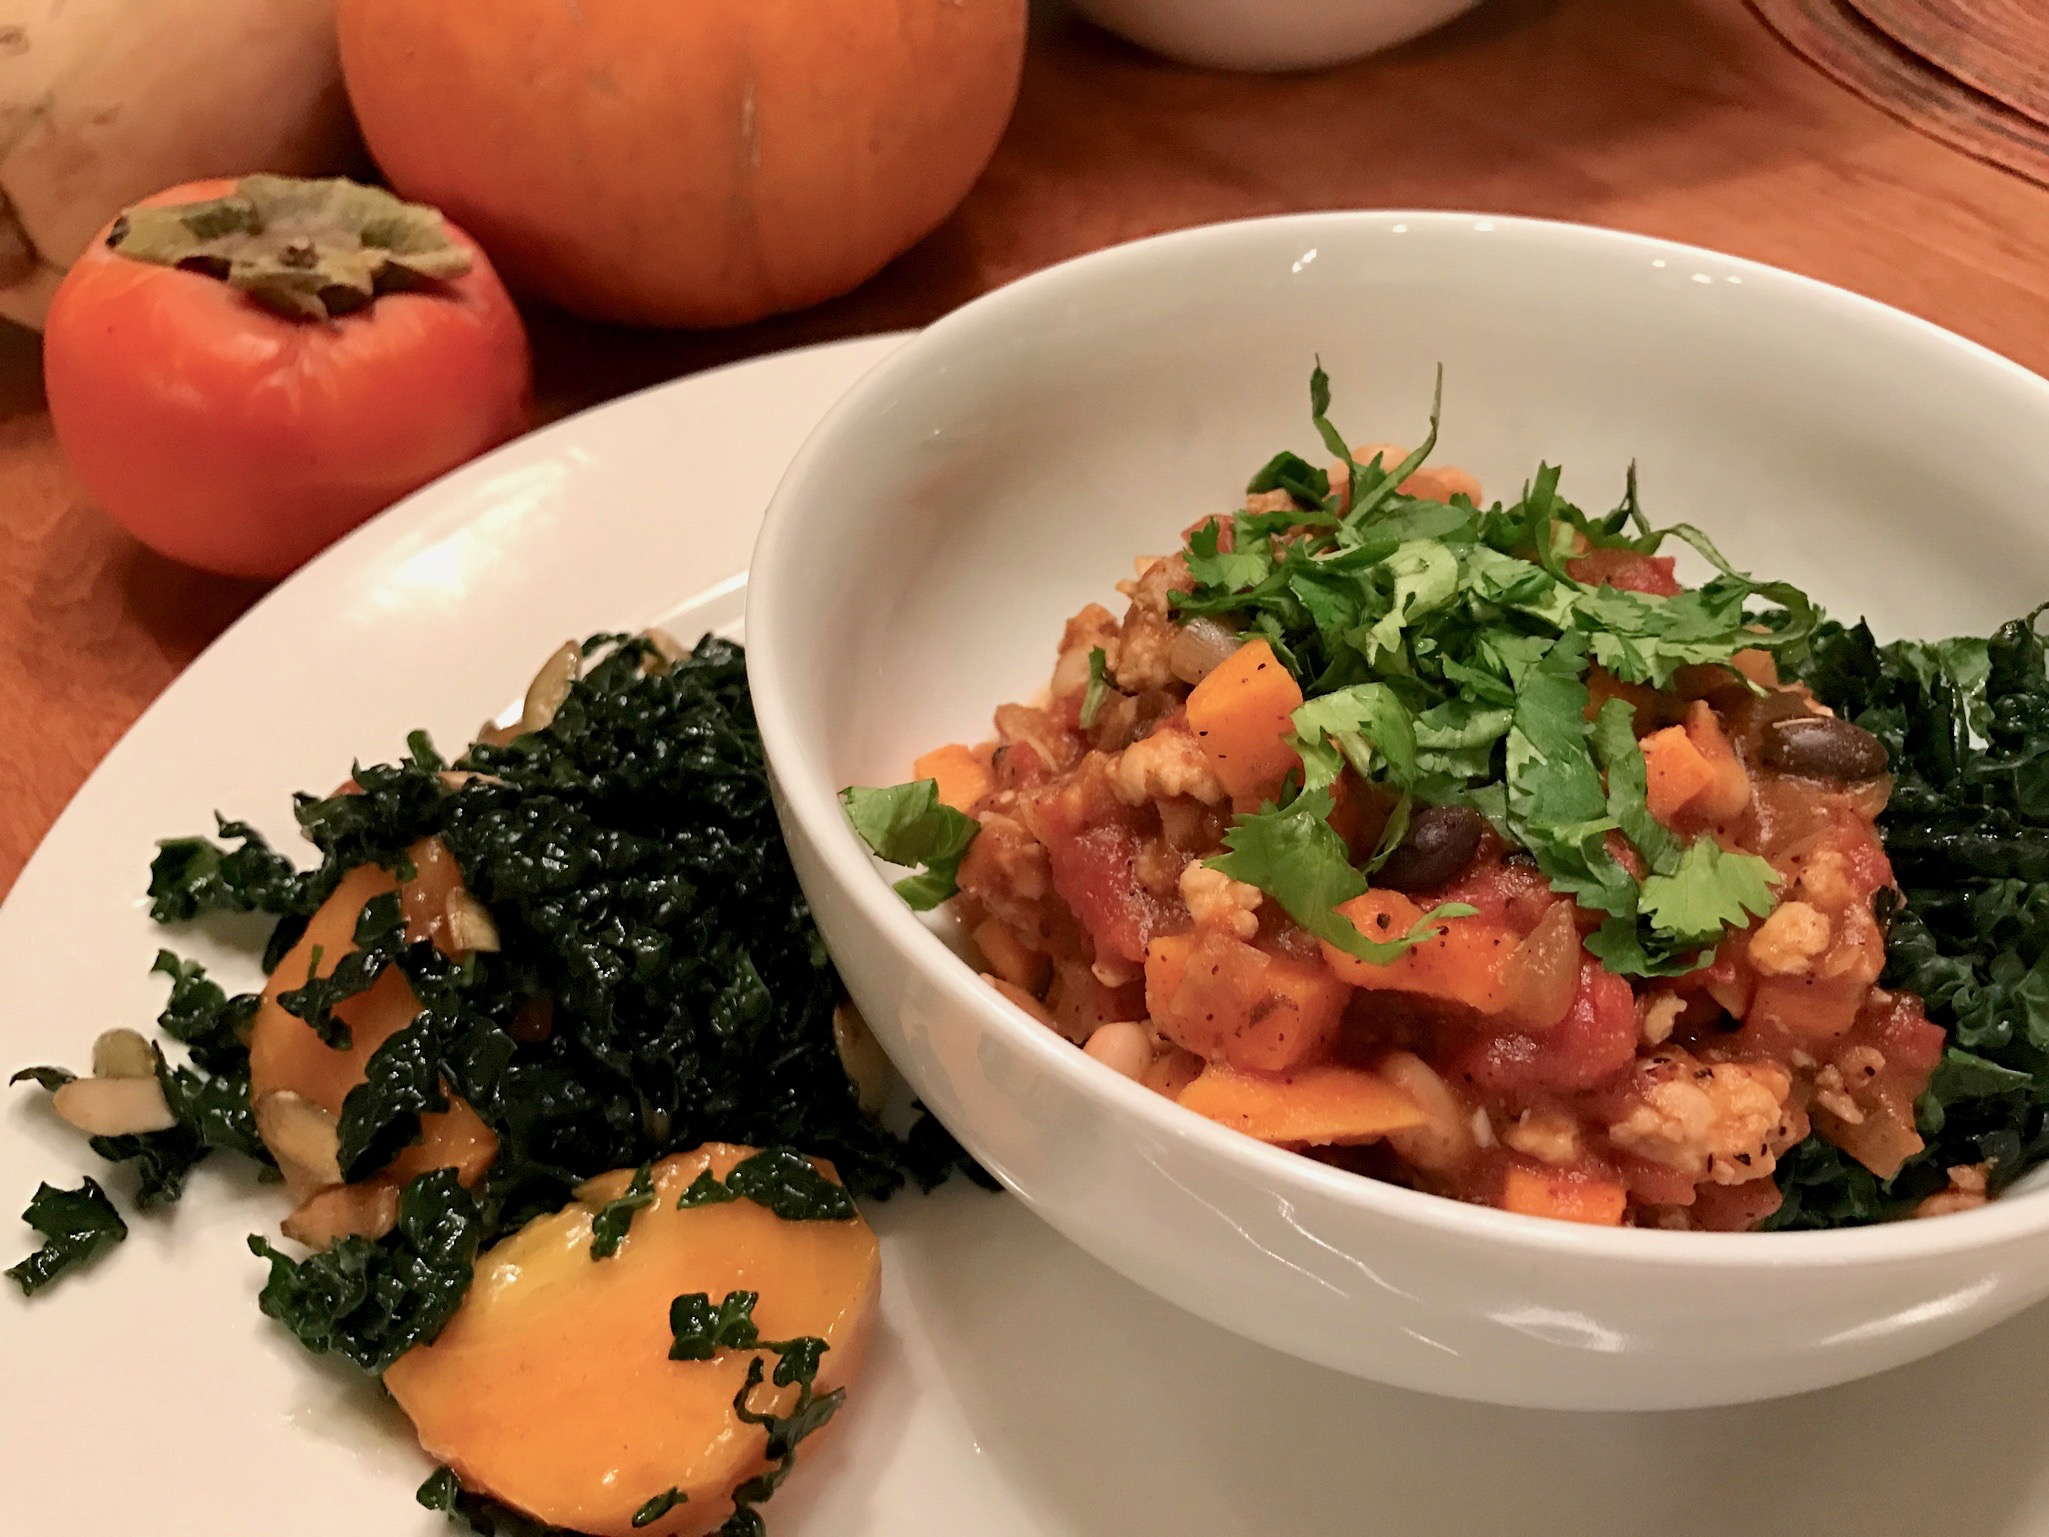 bowl of Turkey, pumpkin and sweet potato chili with a persimmon and kale salad on the side